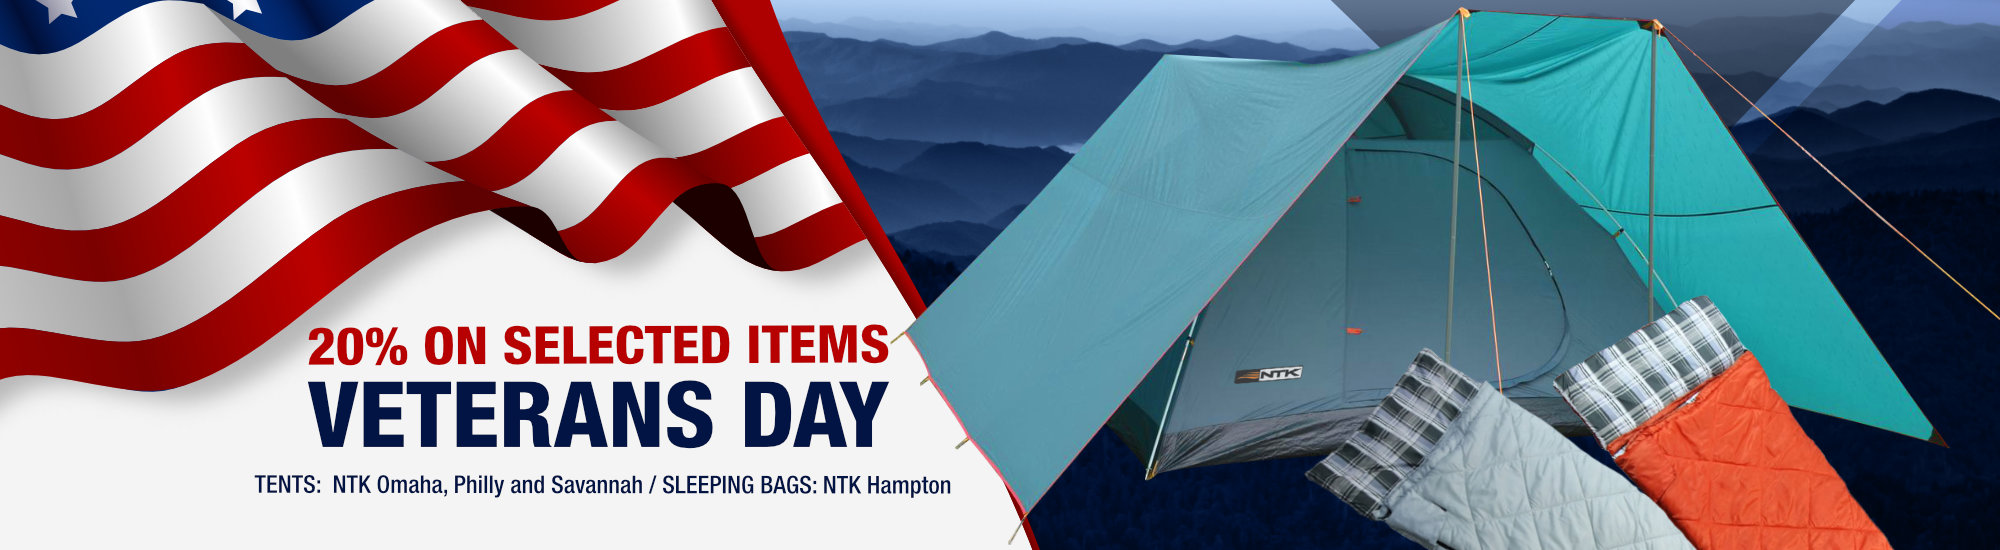 20% Off on selected items - Veterans Day 2019 NTK